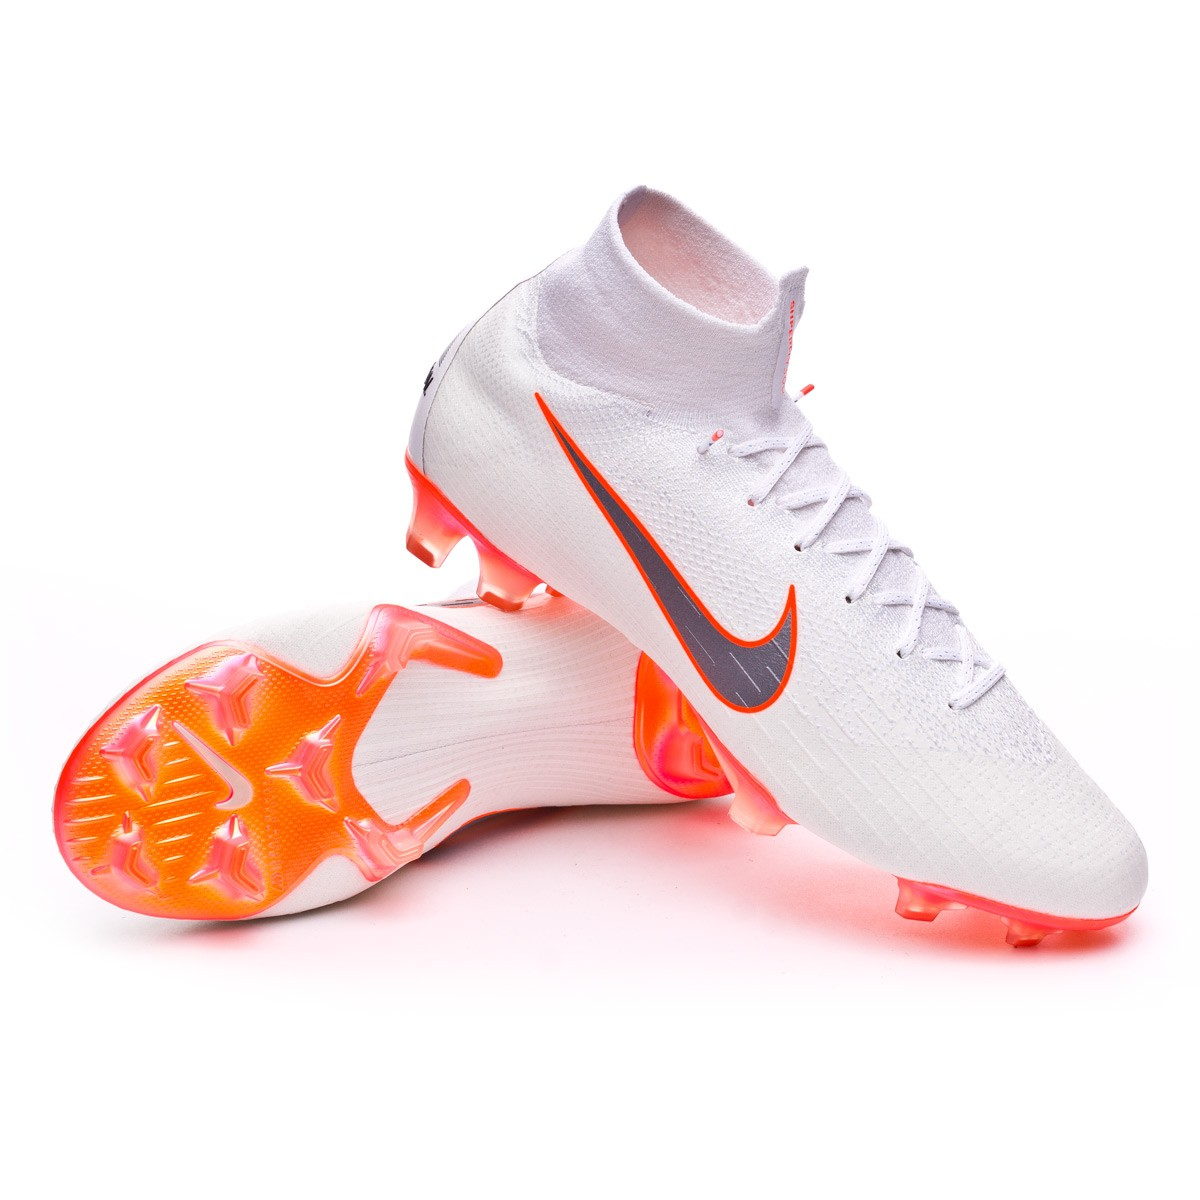 67aa10d46bfe Football Boots Nike Mercurial Superfly VI Elite FG White-Metallic cool  grey-Total orange - Tienda de fútbol Fútbol Emotion